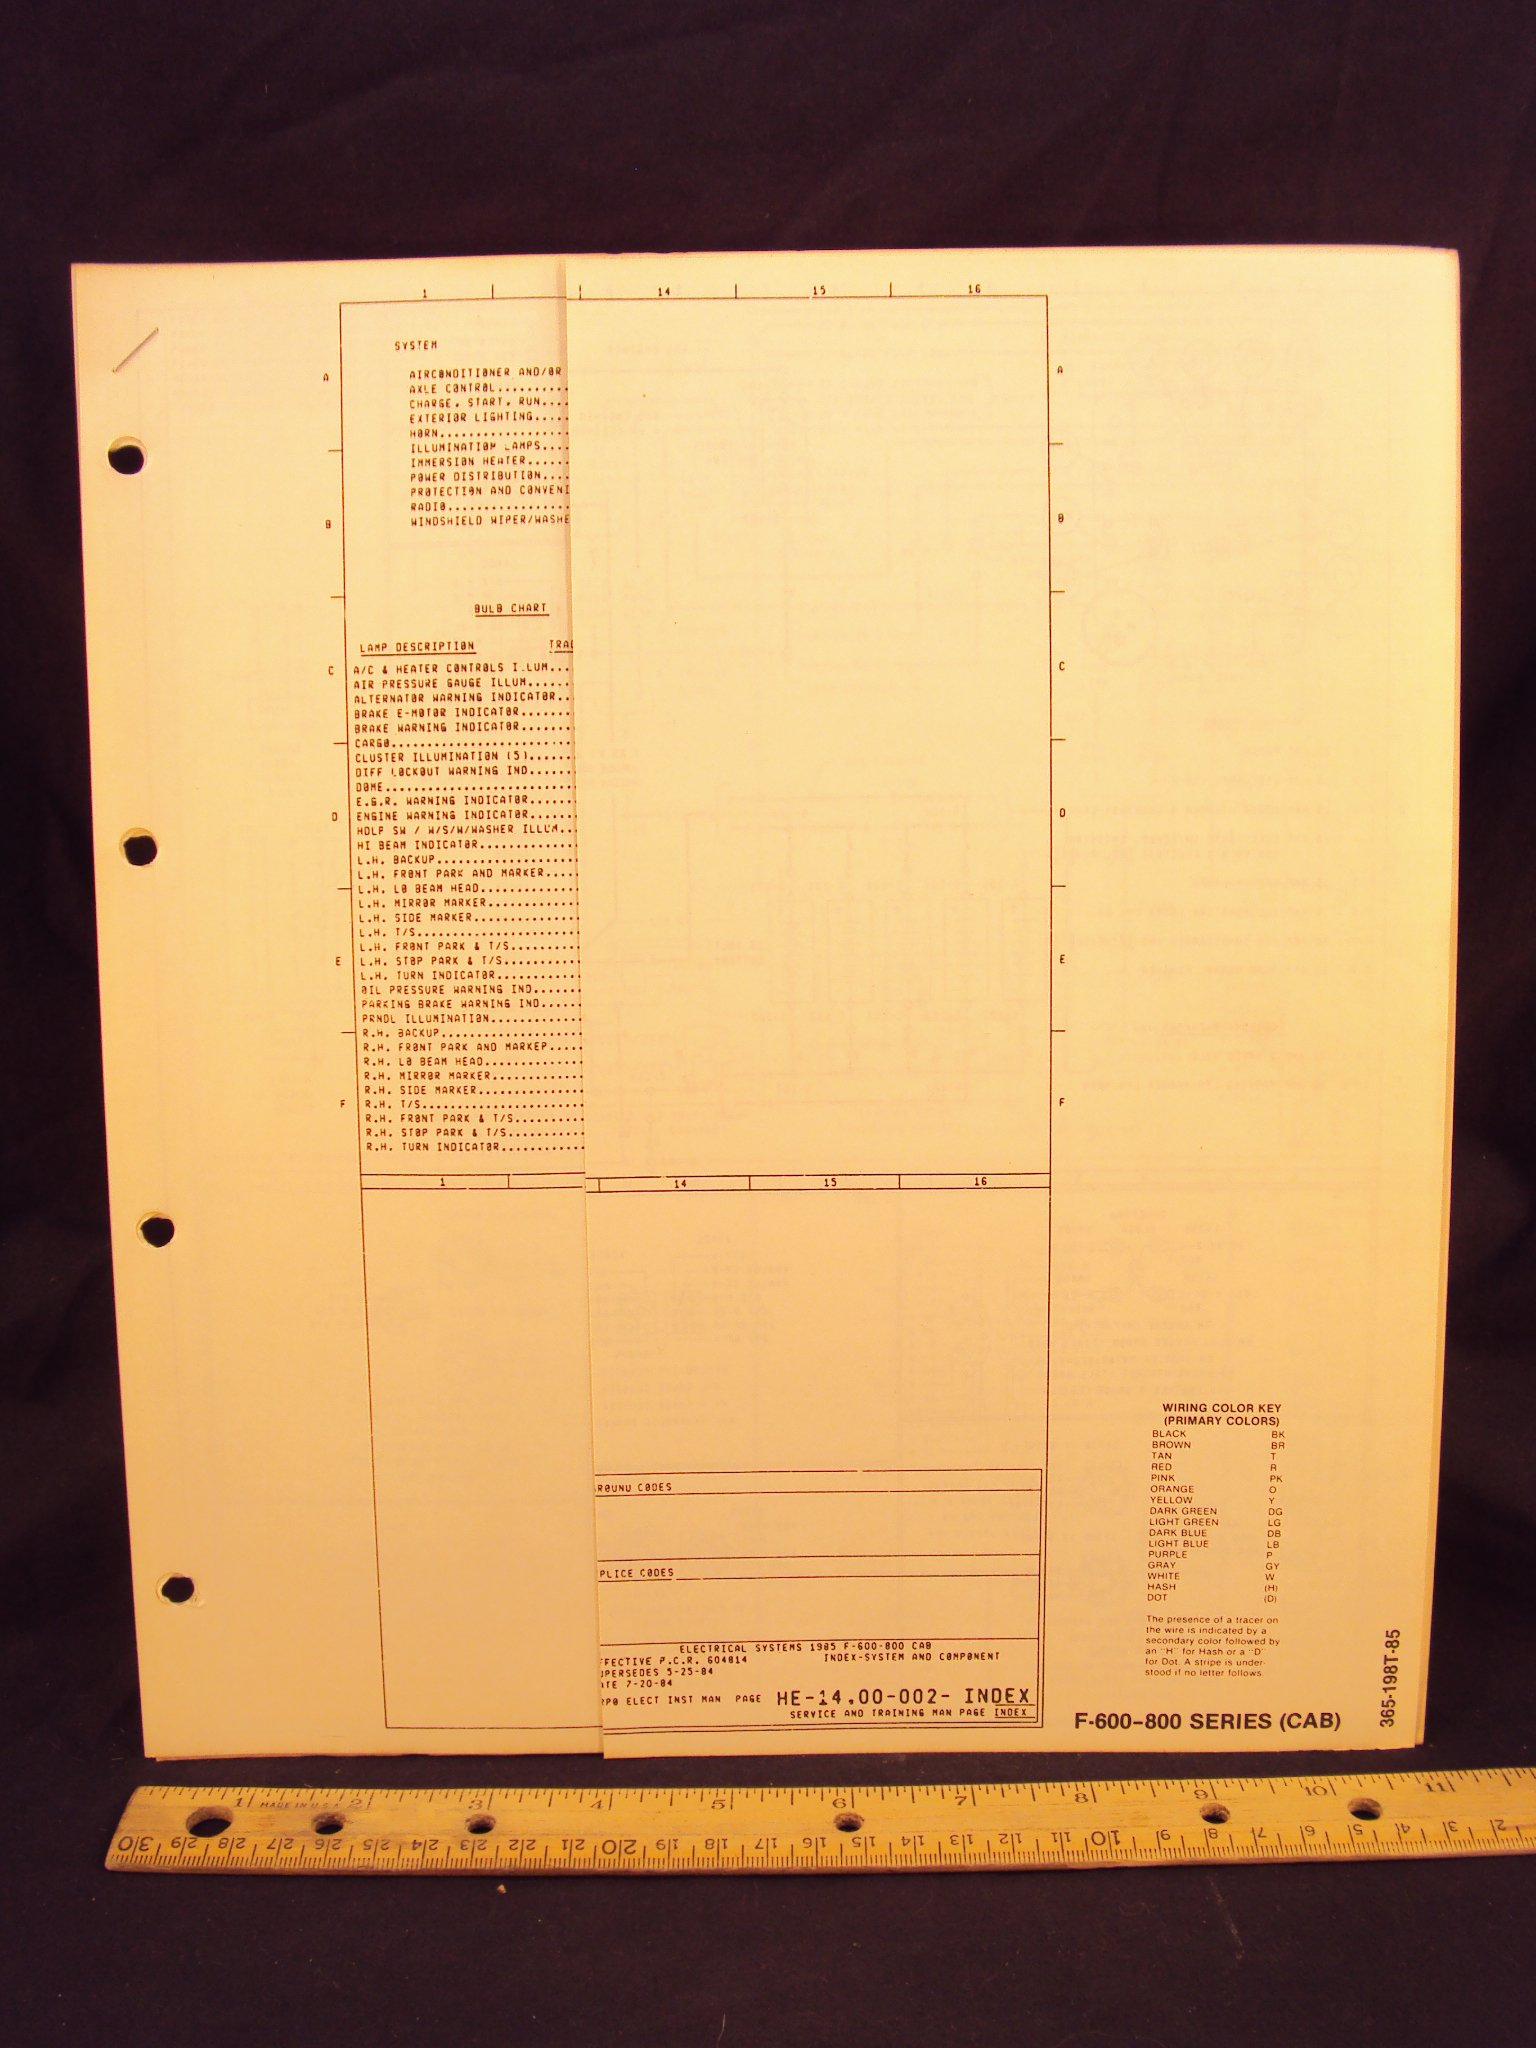 1985 ford f600, f700, & f800 series cab truck electrical wiring diagrams /  schematics loose leaf – january 1, 1984